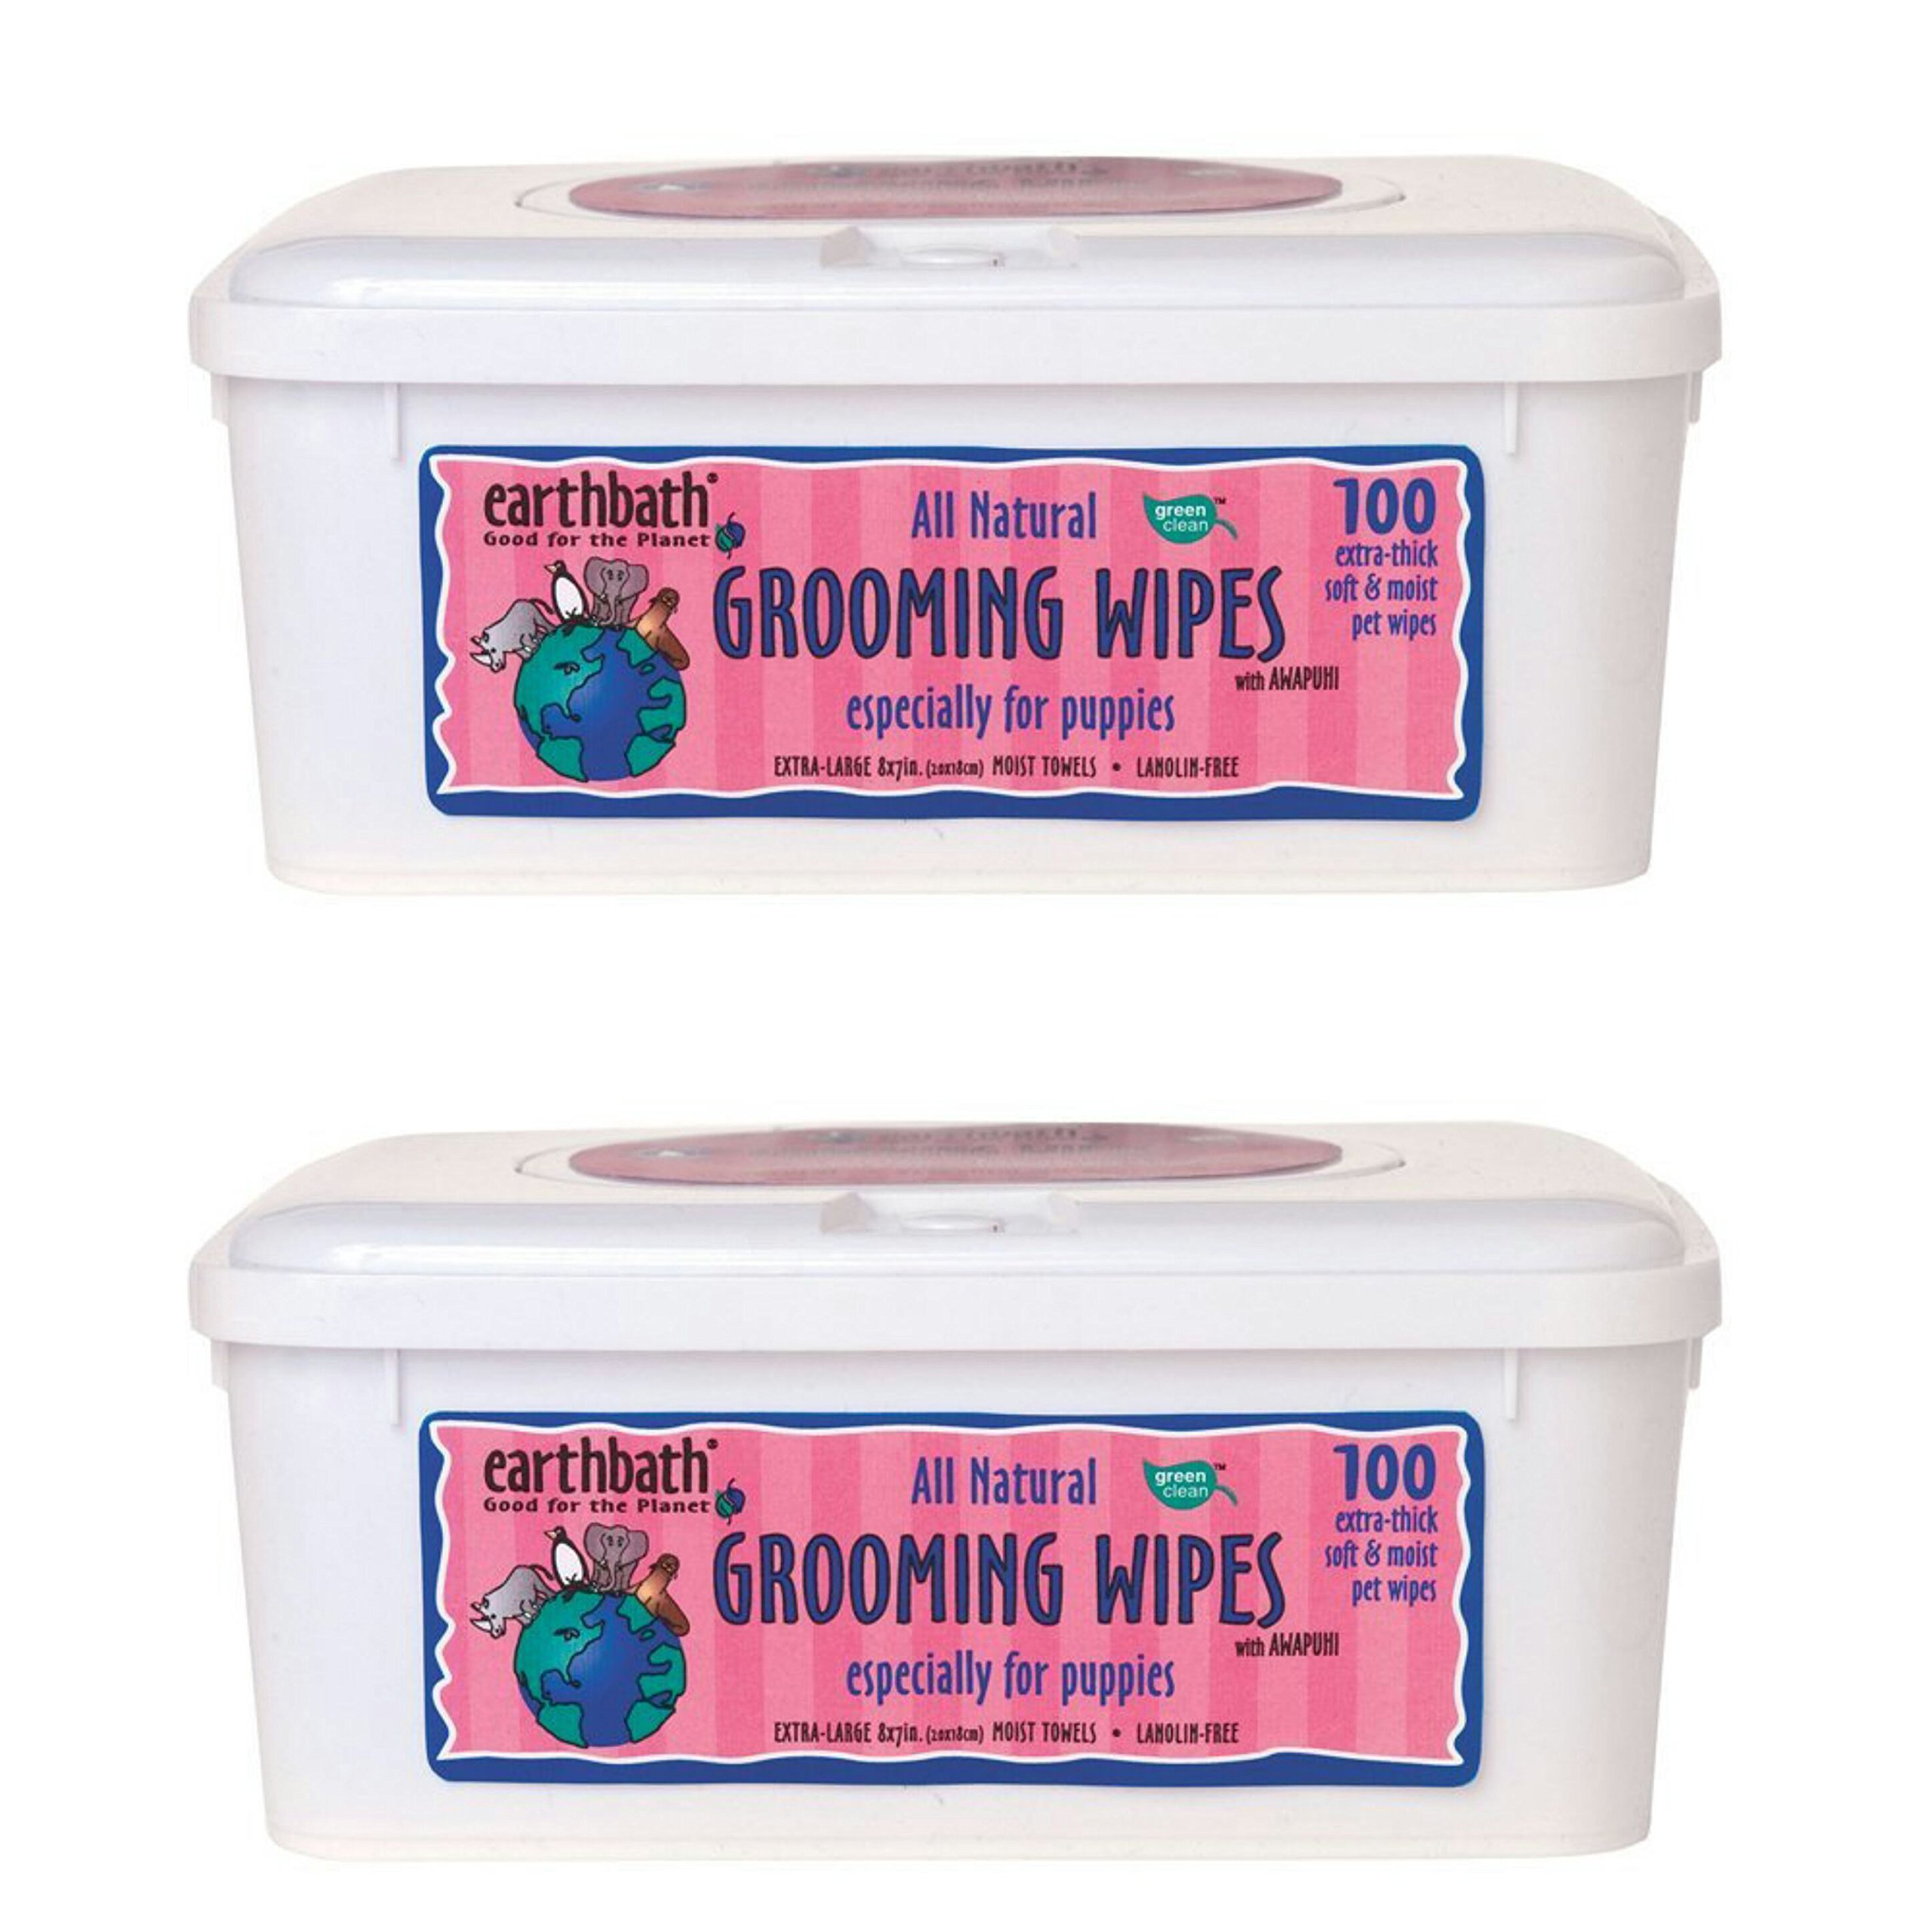 Earthbath All Natural Grooming Wipes, Puppy - Pack of 2